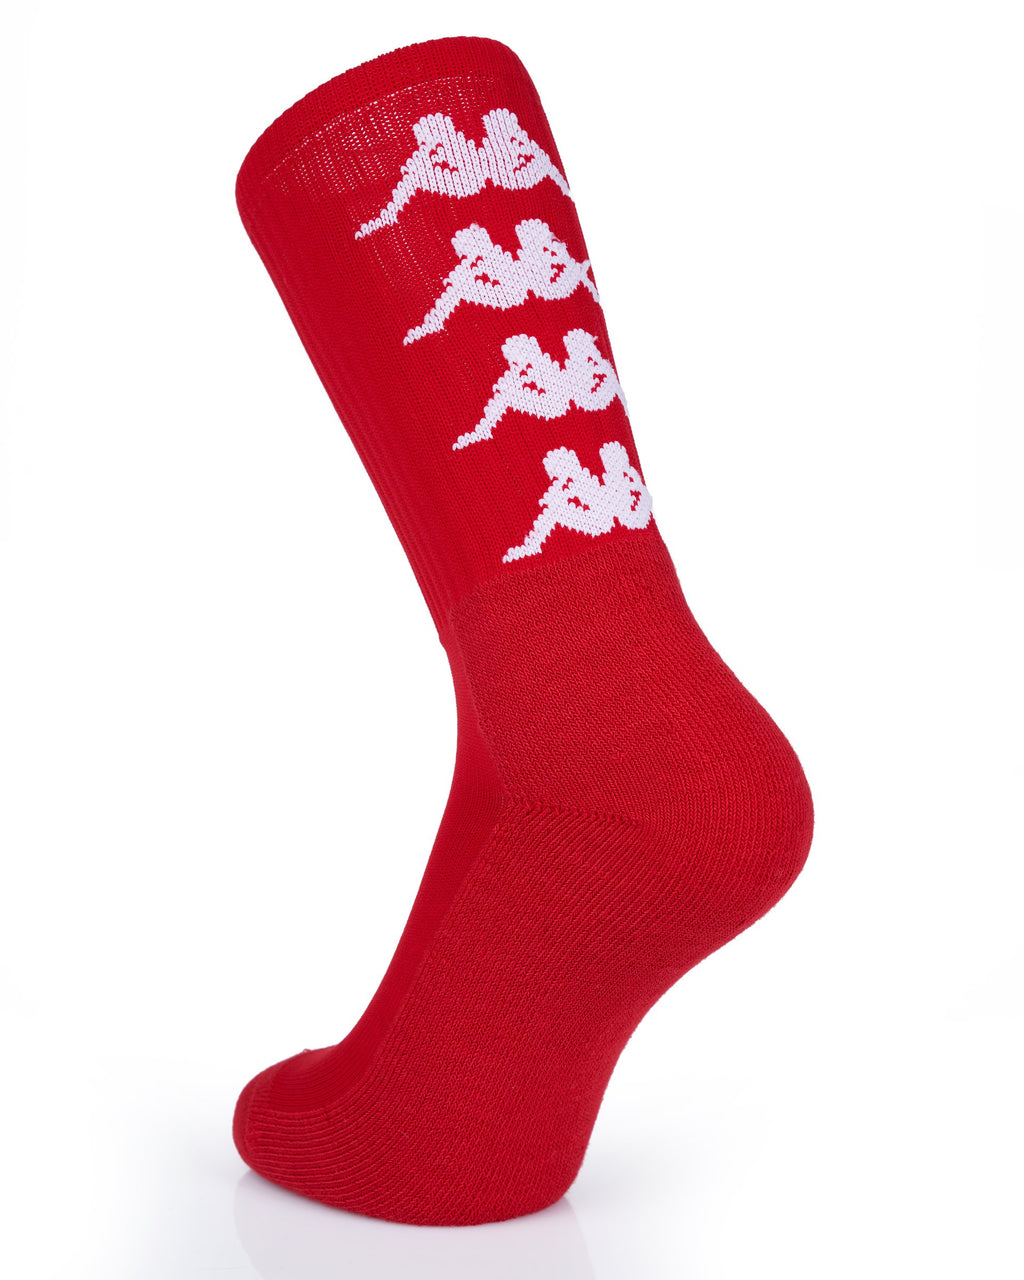 Authentic Amal 1 Pack Red Dk White Socks